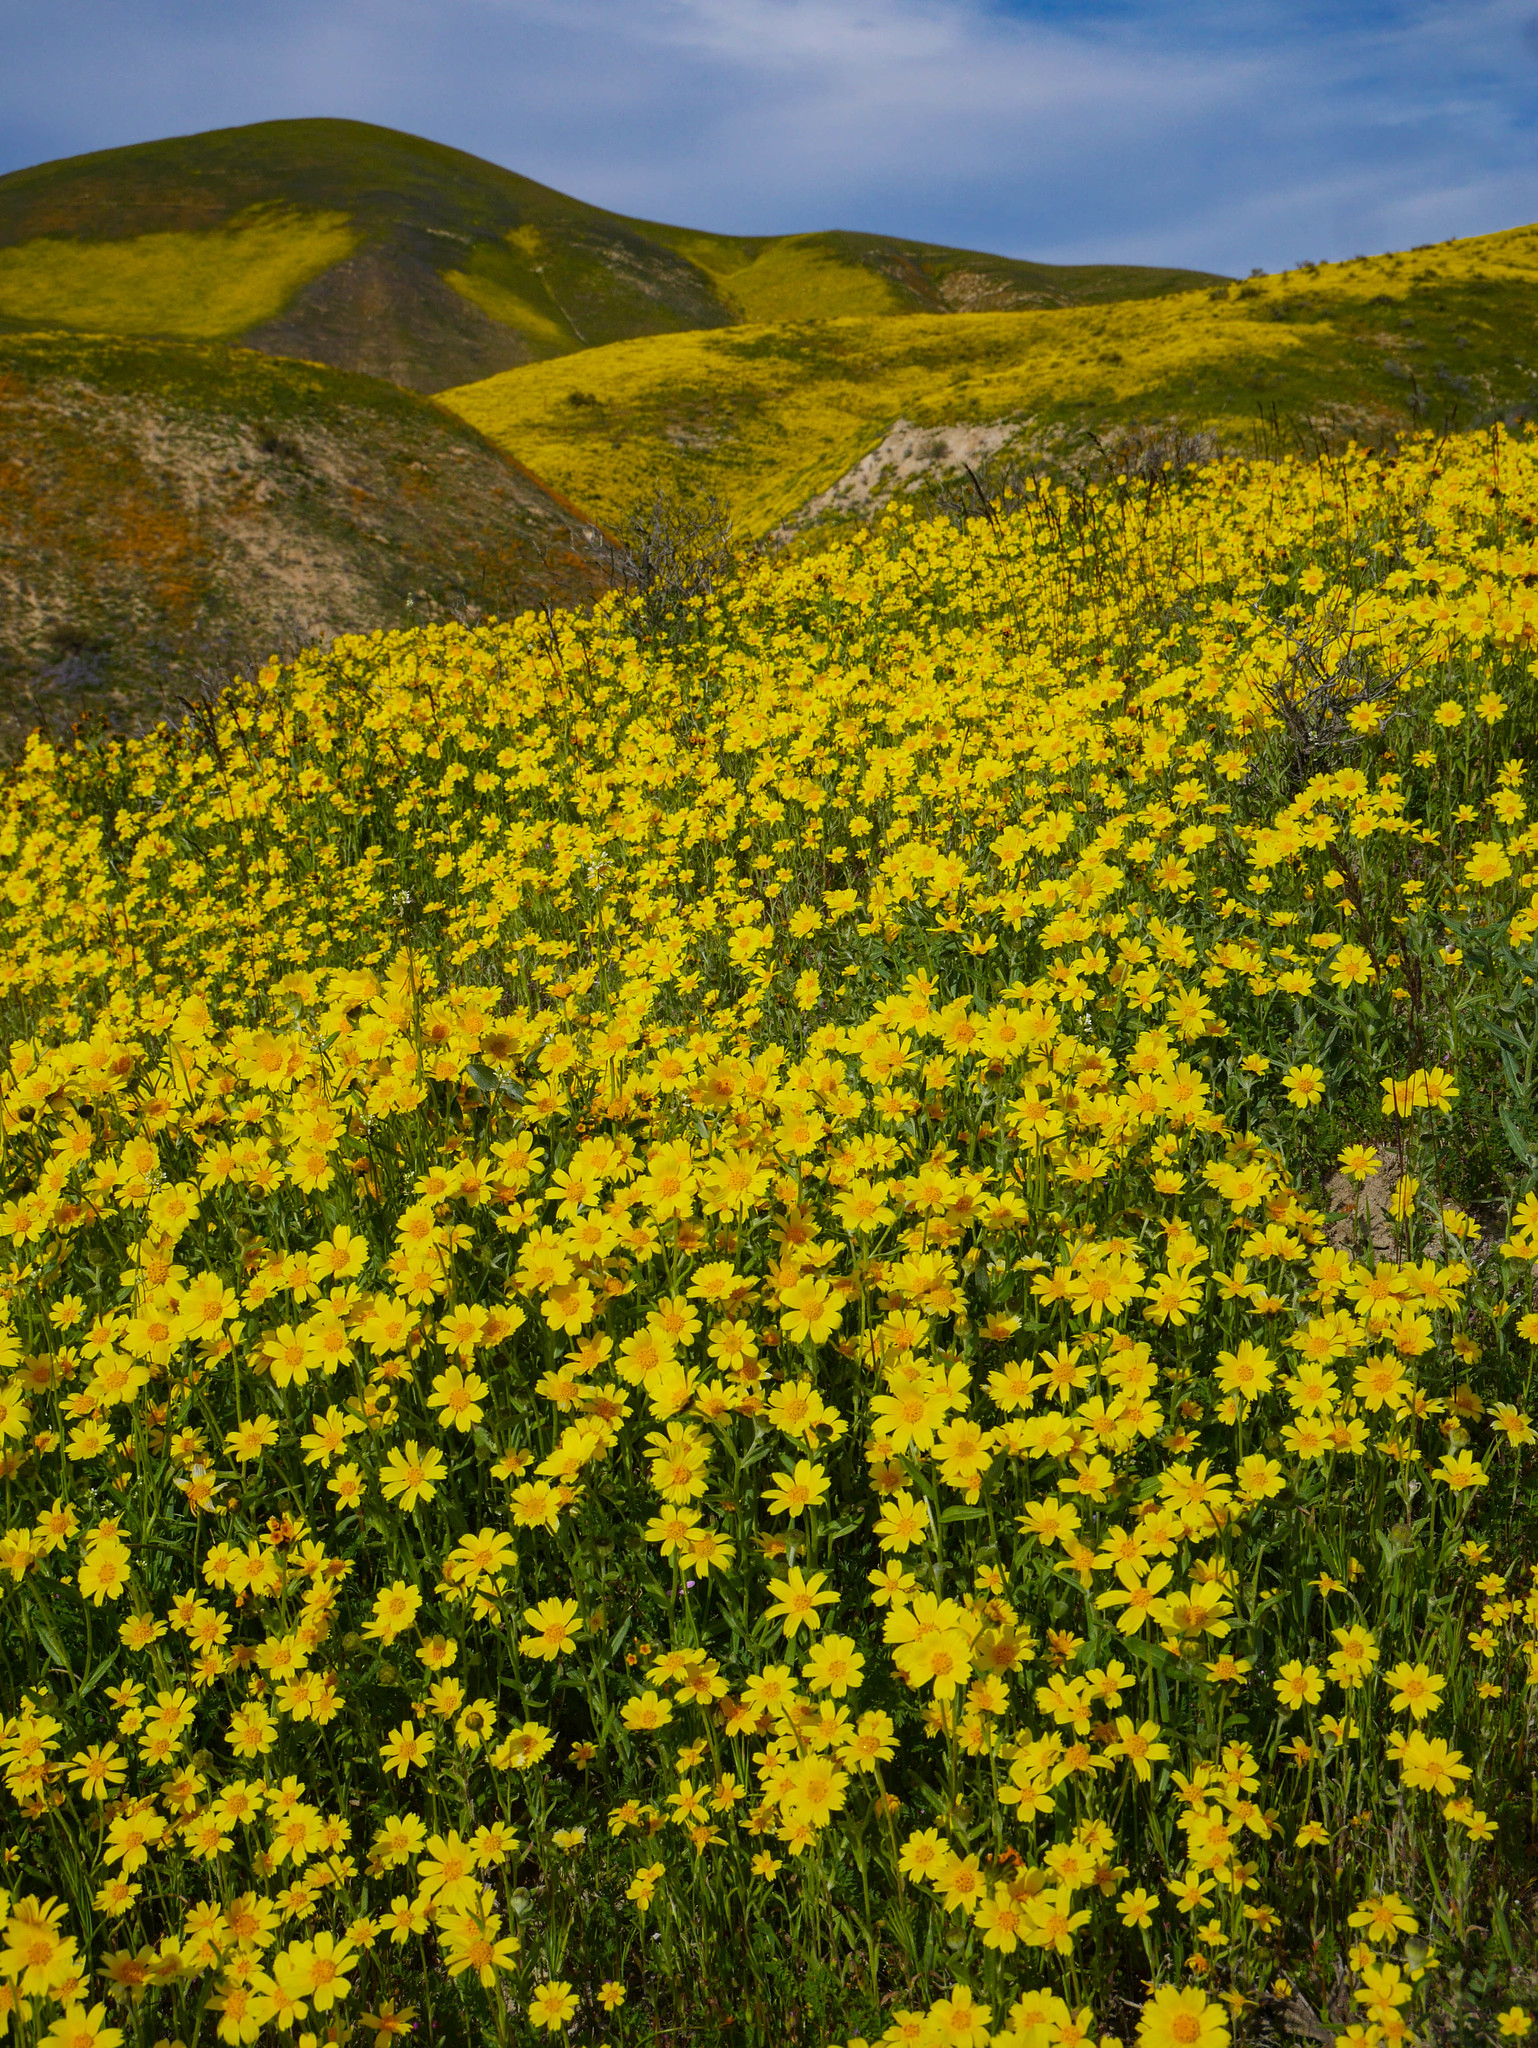 Superbloom in the Temblor Range